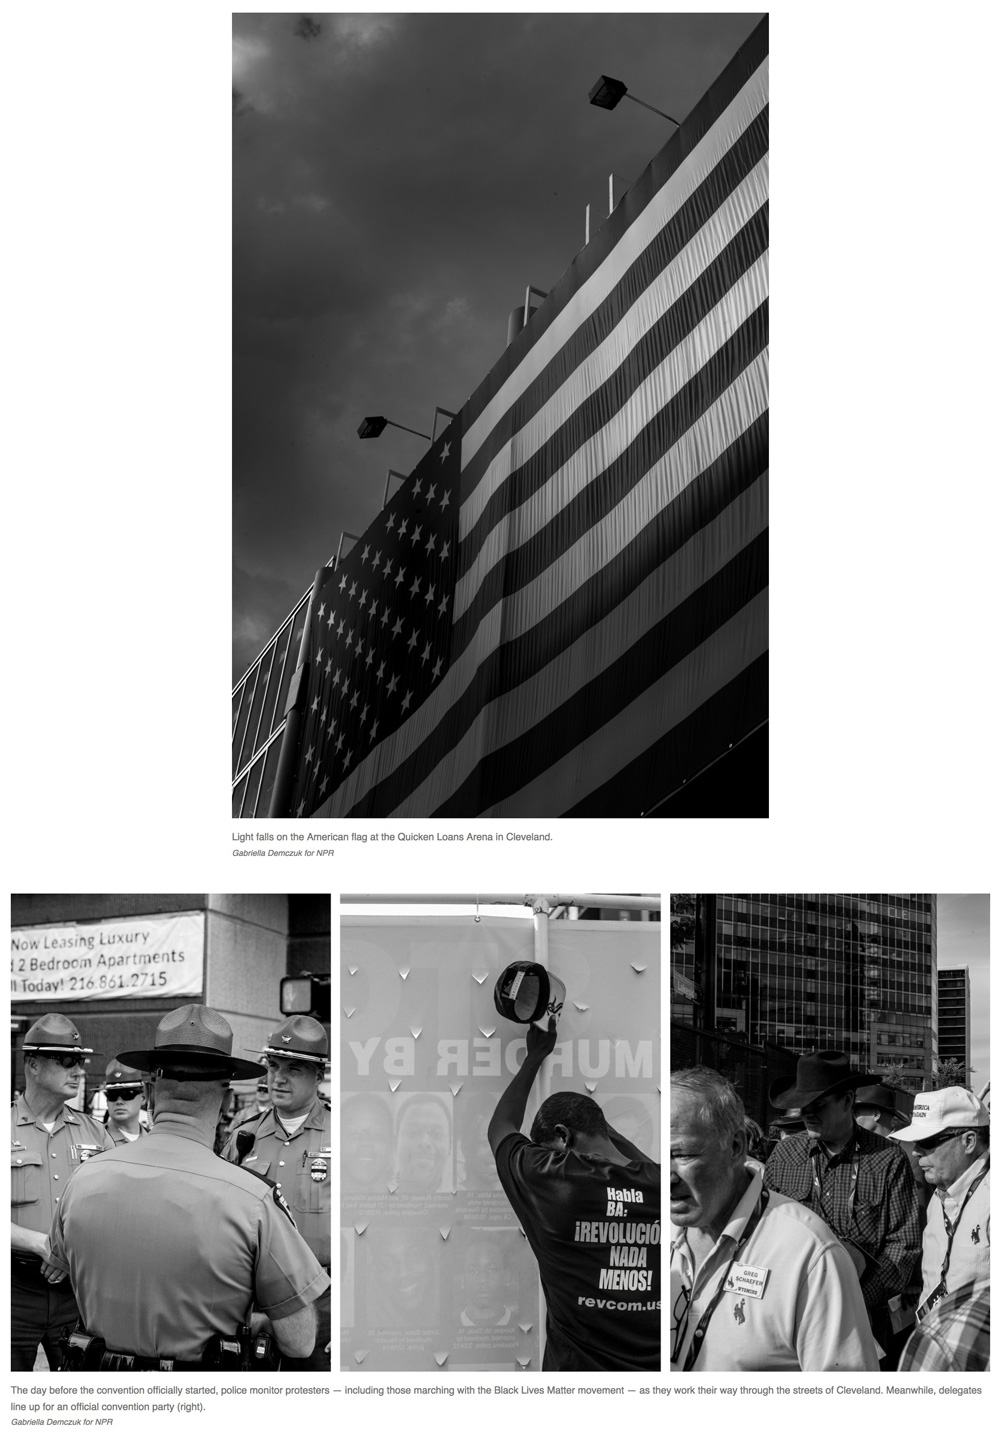 Photography:  Gabriella Demczuk   Photo Editing + Direction: Ariel Zambelich  Story: True Believers, Protesters And Trump: Scenes From Cleveland